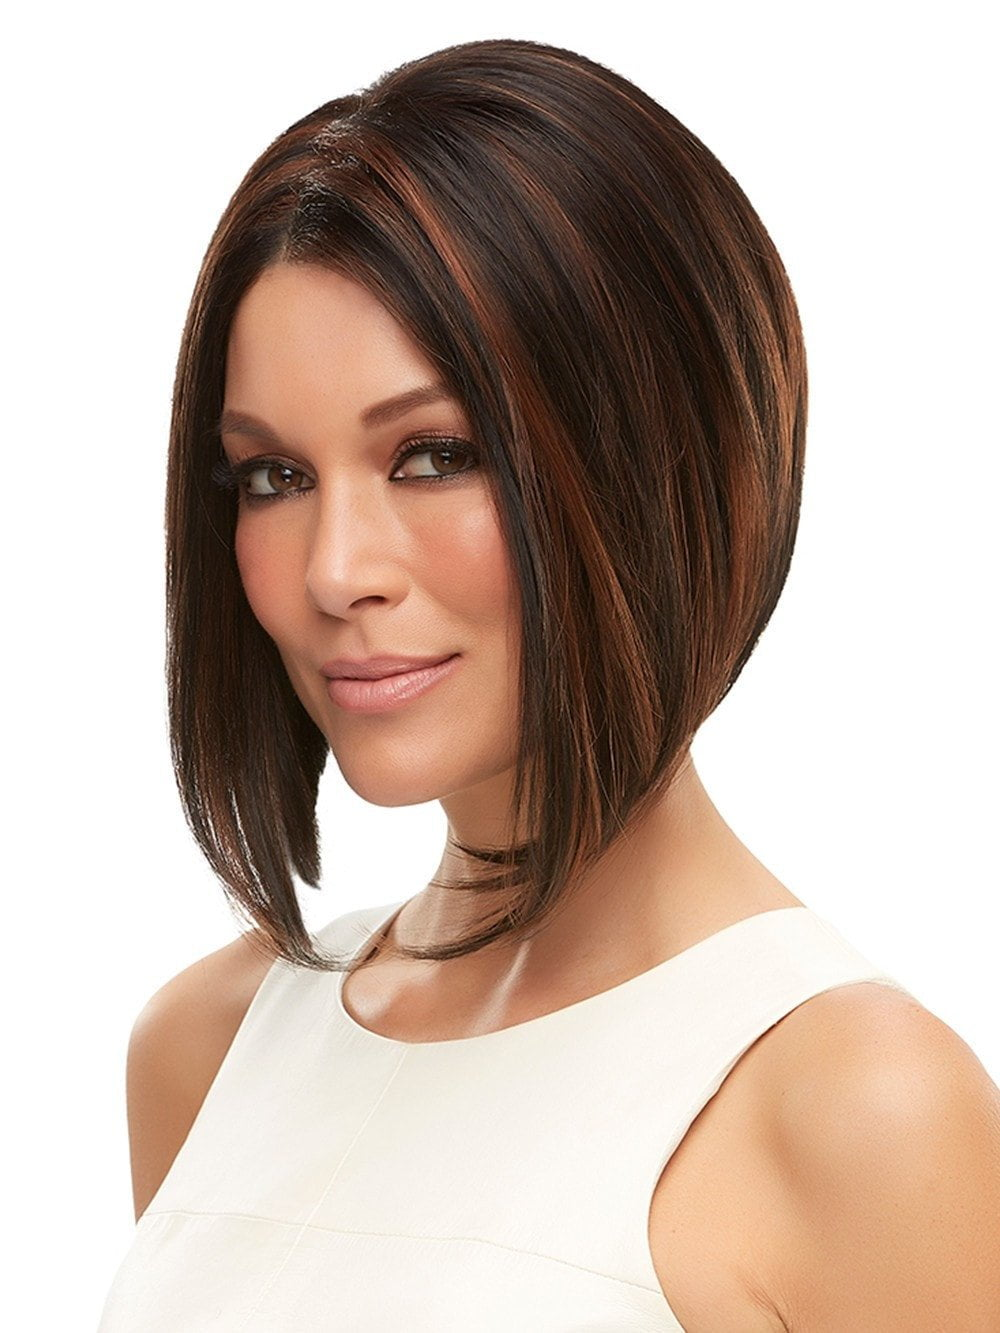 Prime Bob Wigs Find Your Perfect Bob Style Wigs Com The Wig Experts Hairstyle Inspiration Daily Dogsangcom